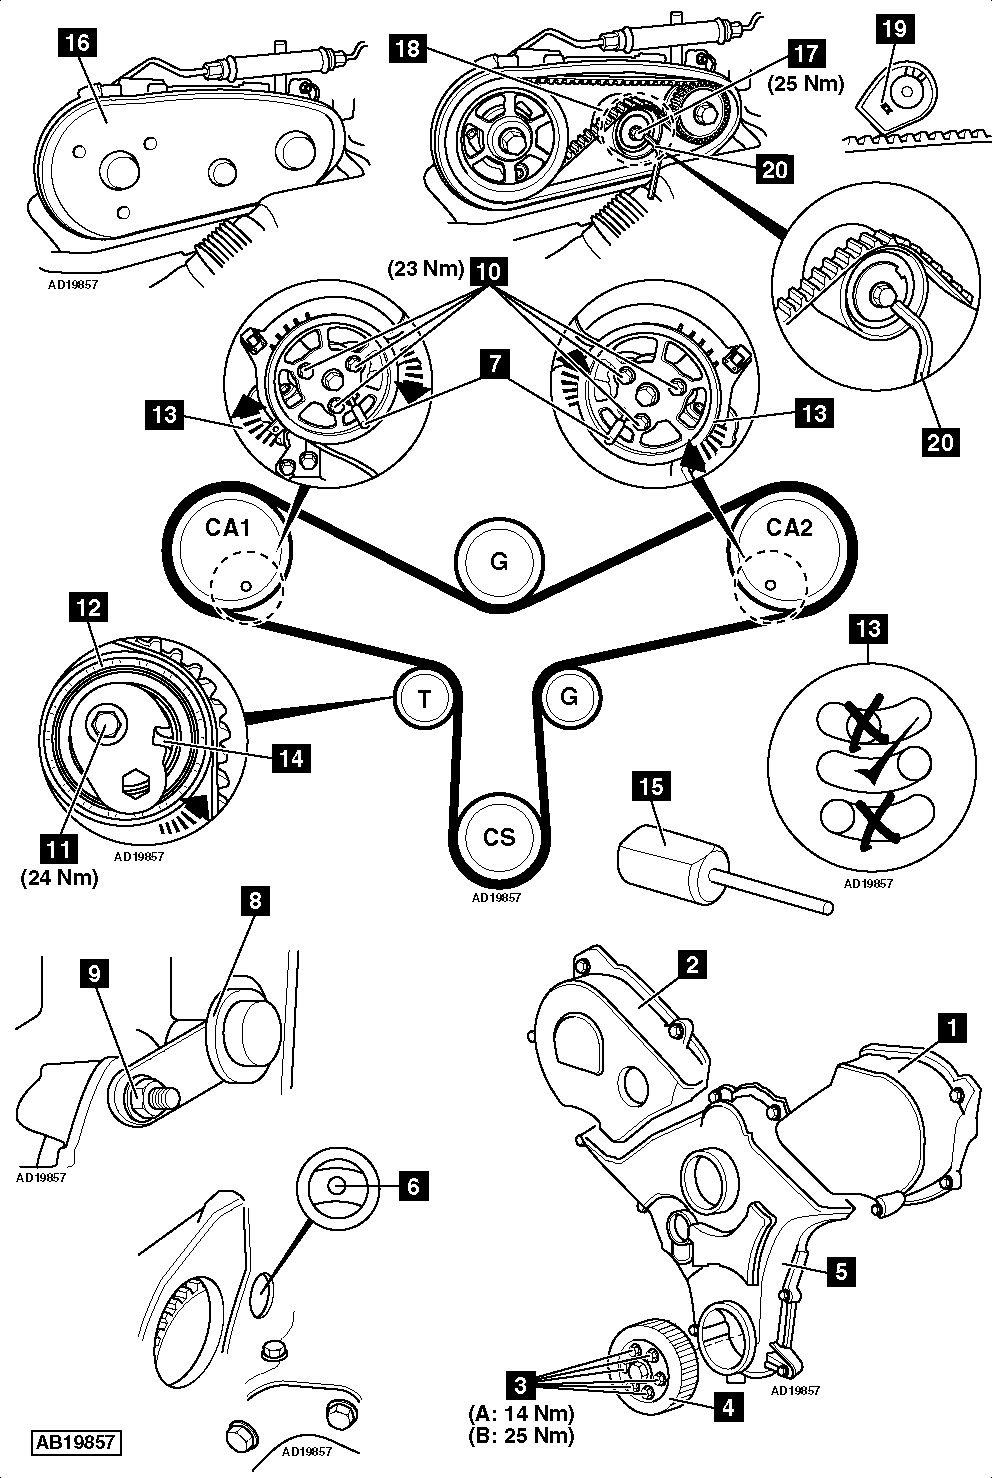 jaguar xj6 alternator wiring diagram jaguar xj6 electrical